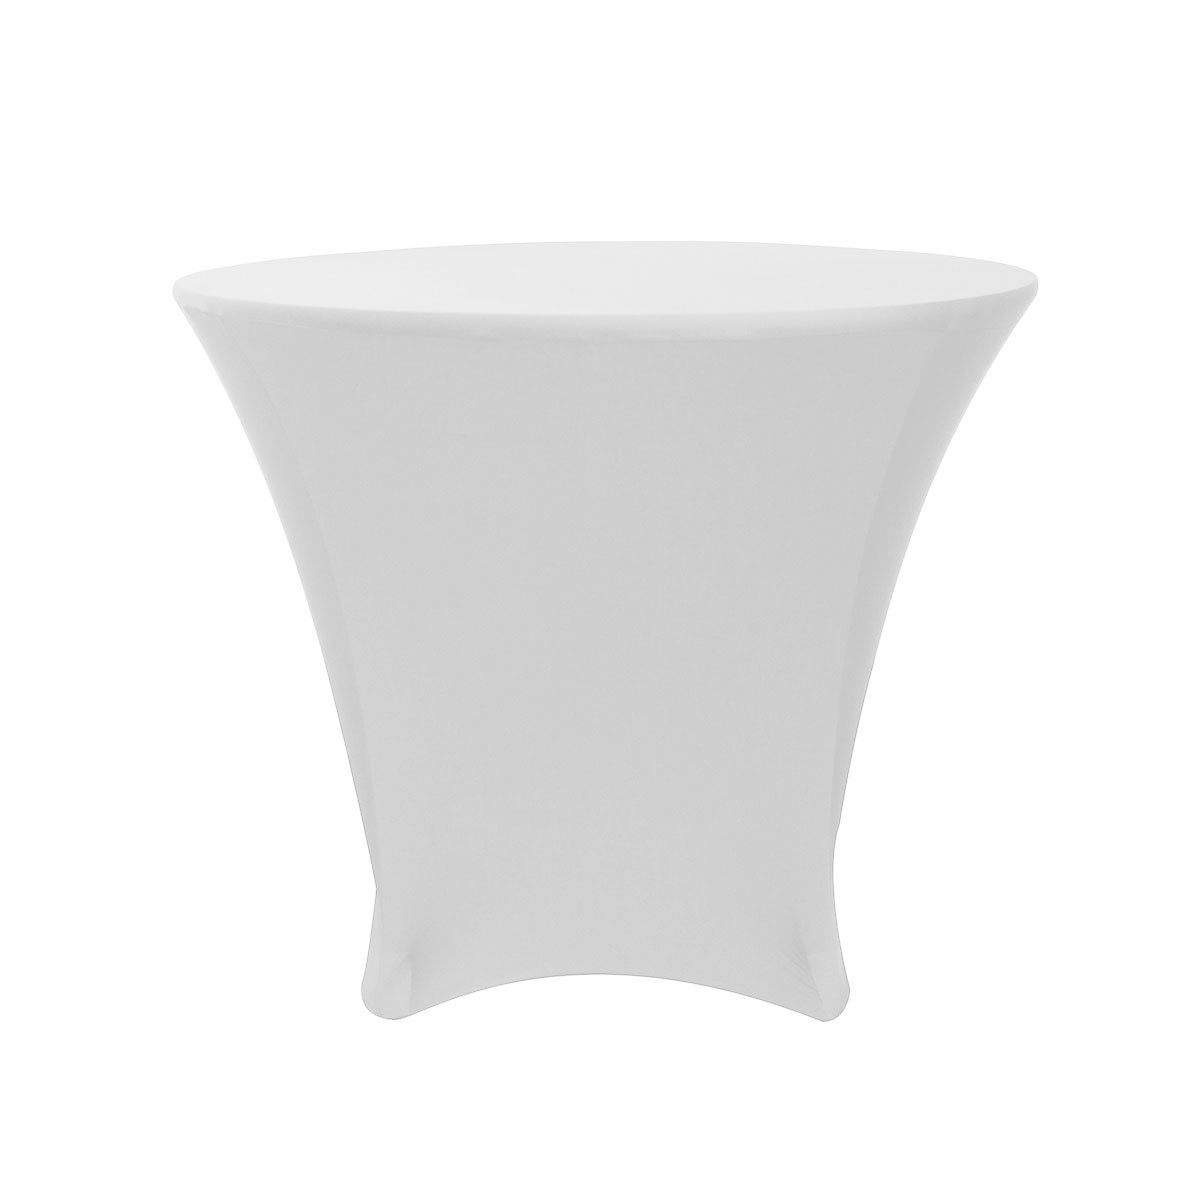 Your Chair Covers - 36 x 30 inch Lowboy Cocktail Round Stretch Spandex Table Cover White